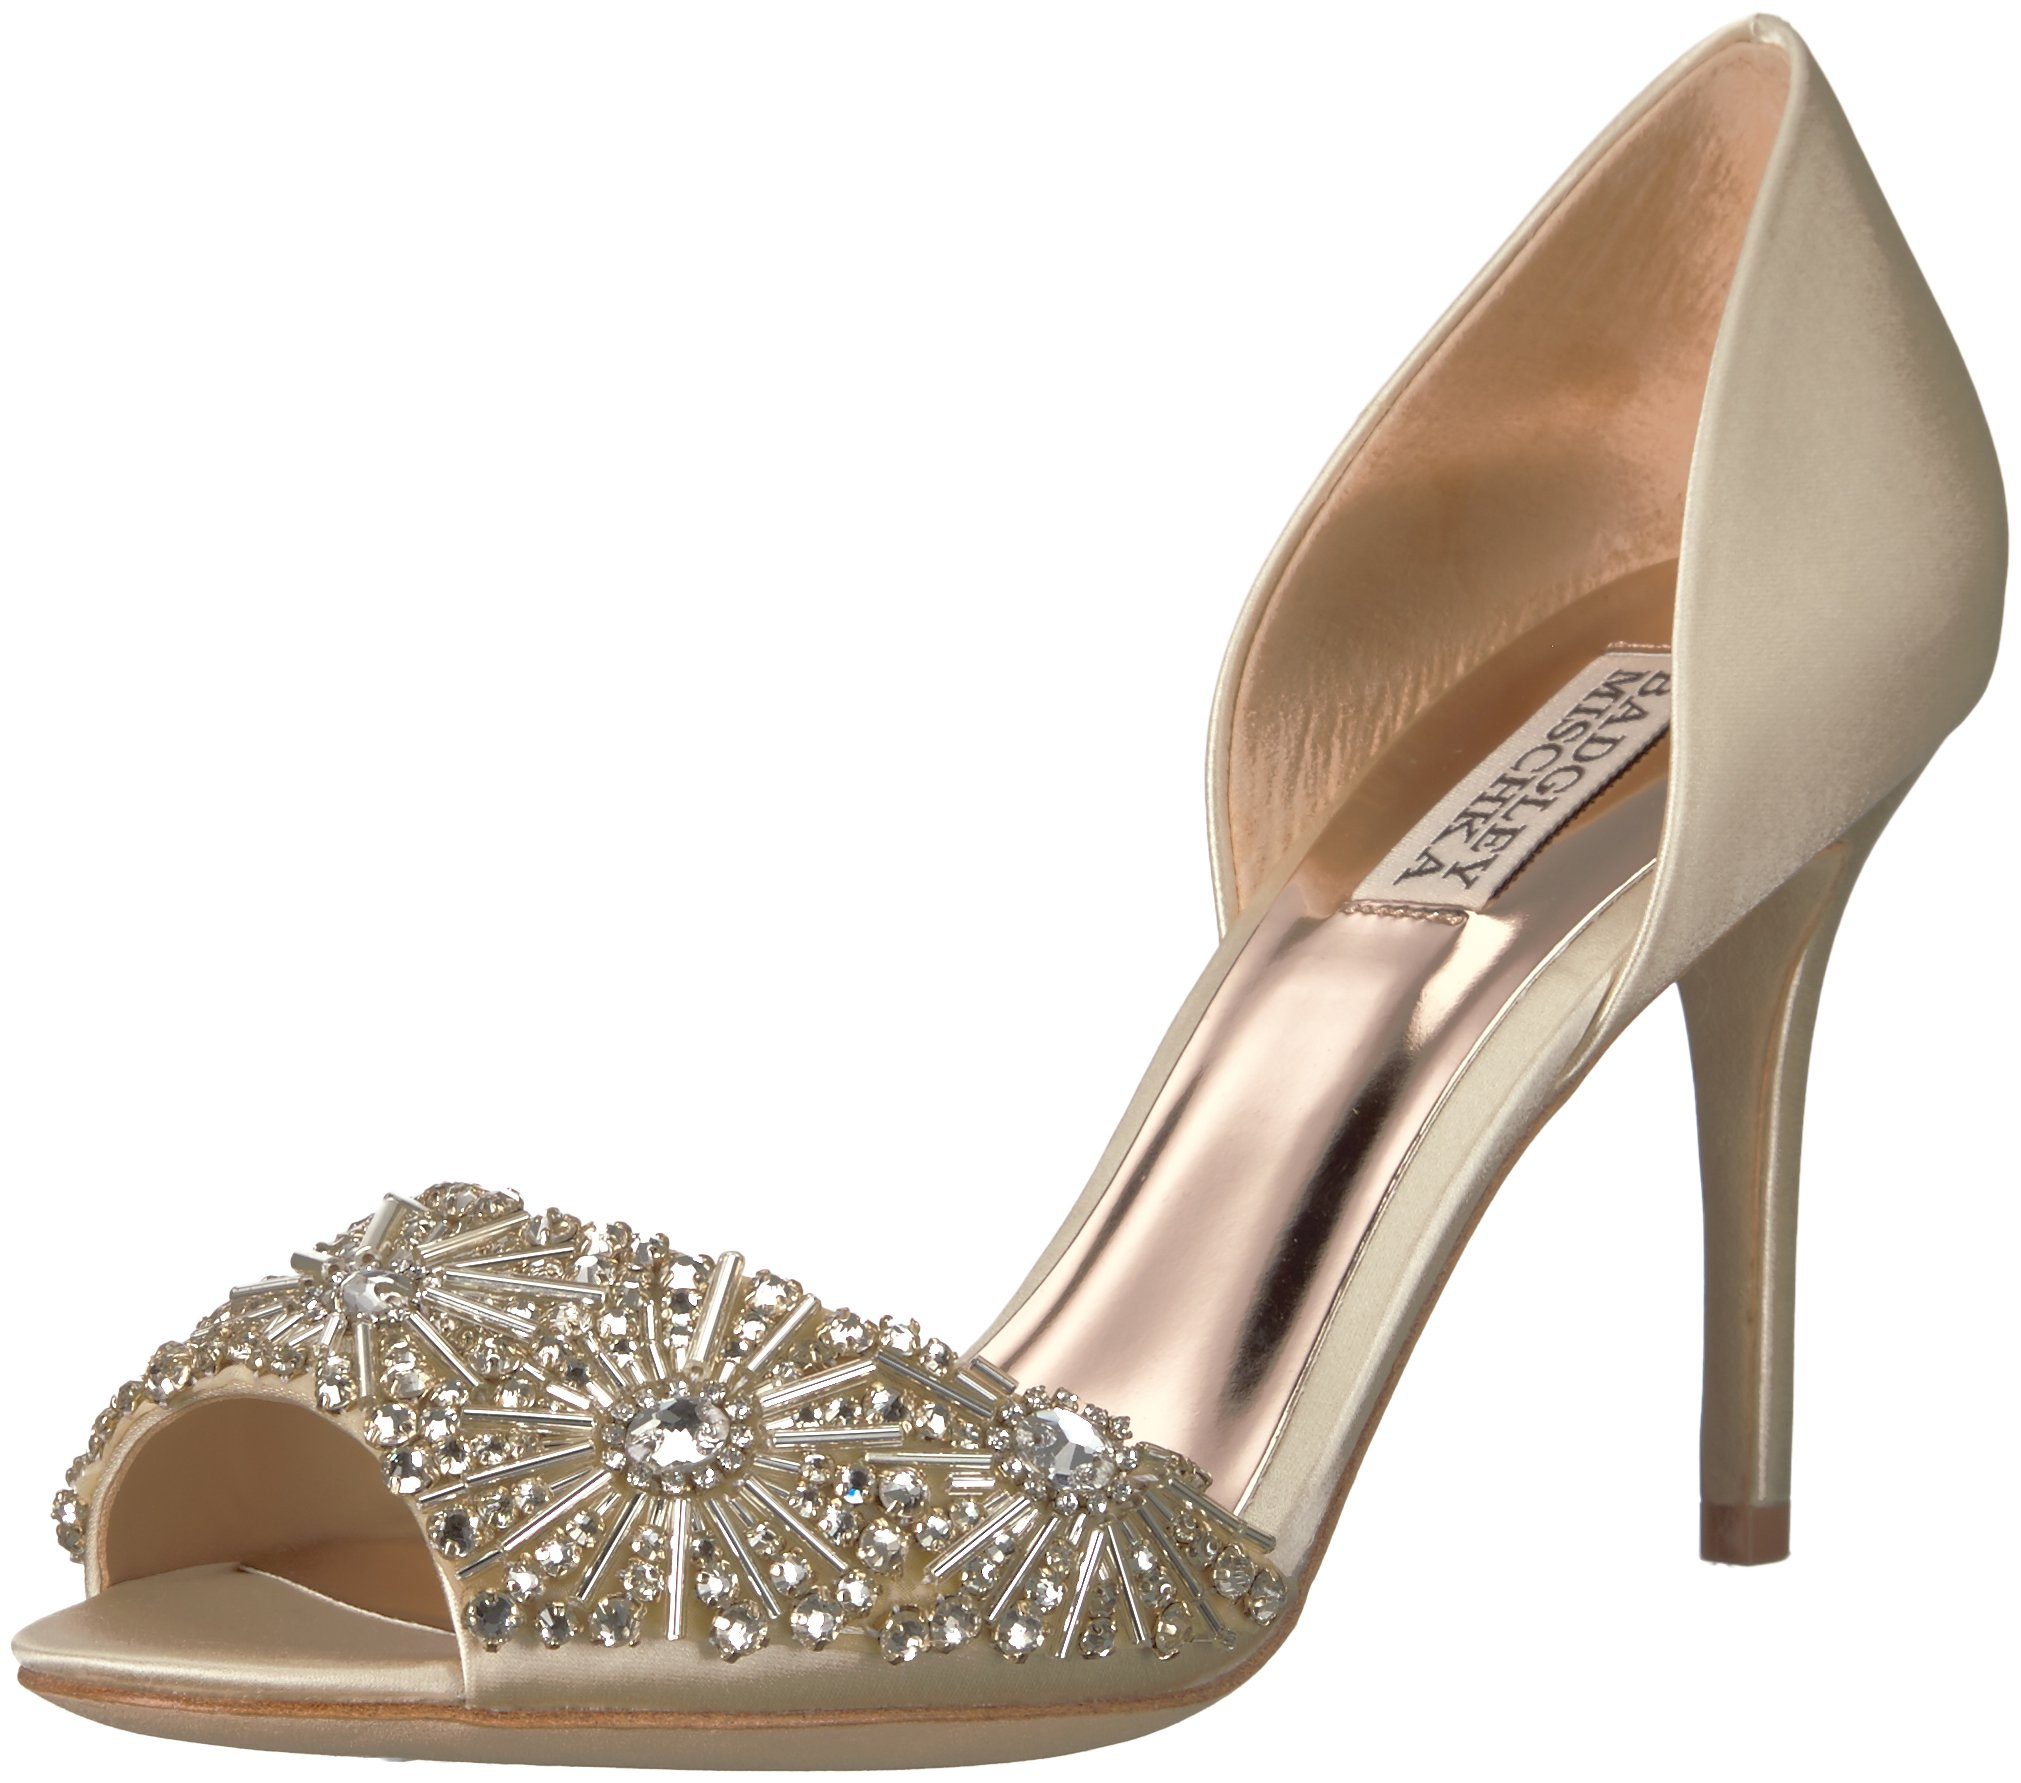 Badgley Mischka Women's Maria Pump, Ivory, 8 M US